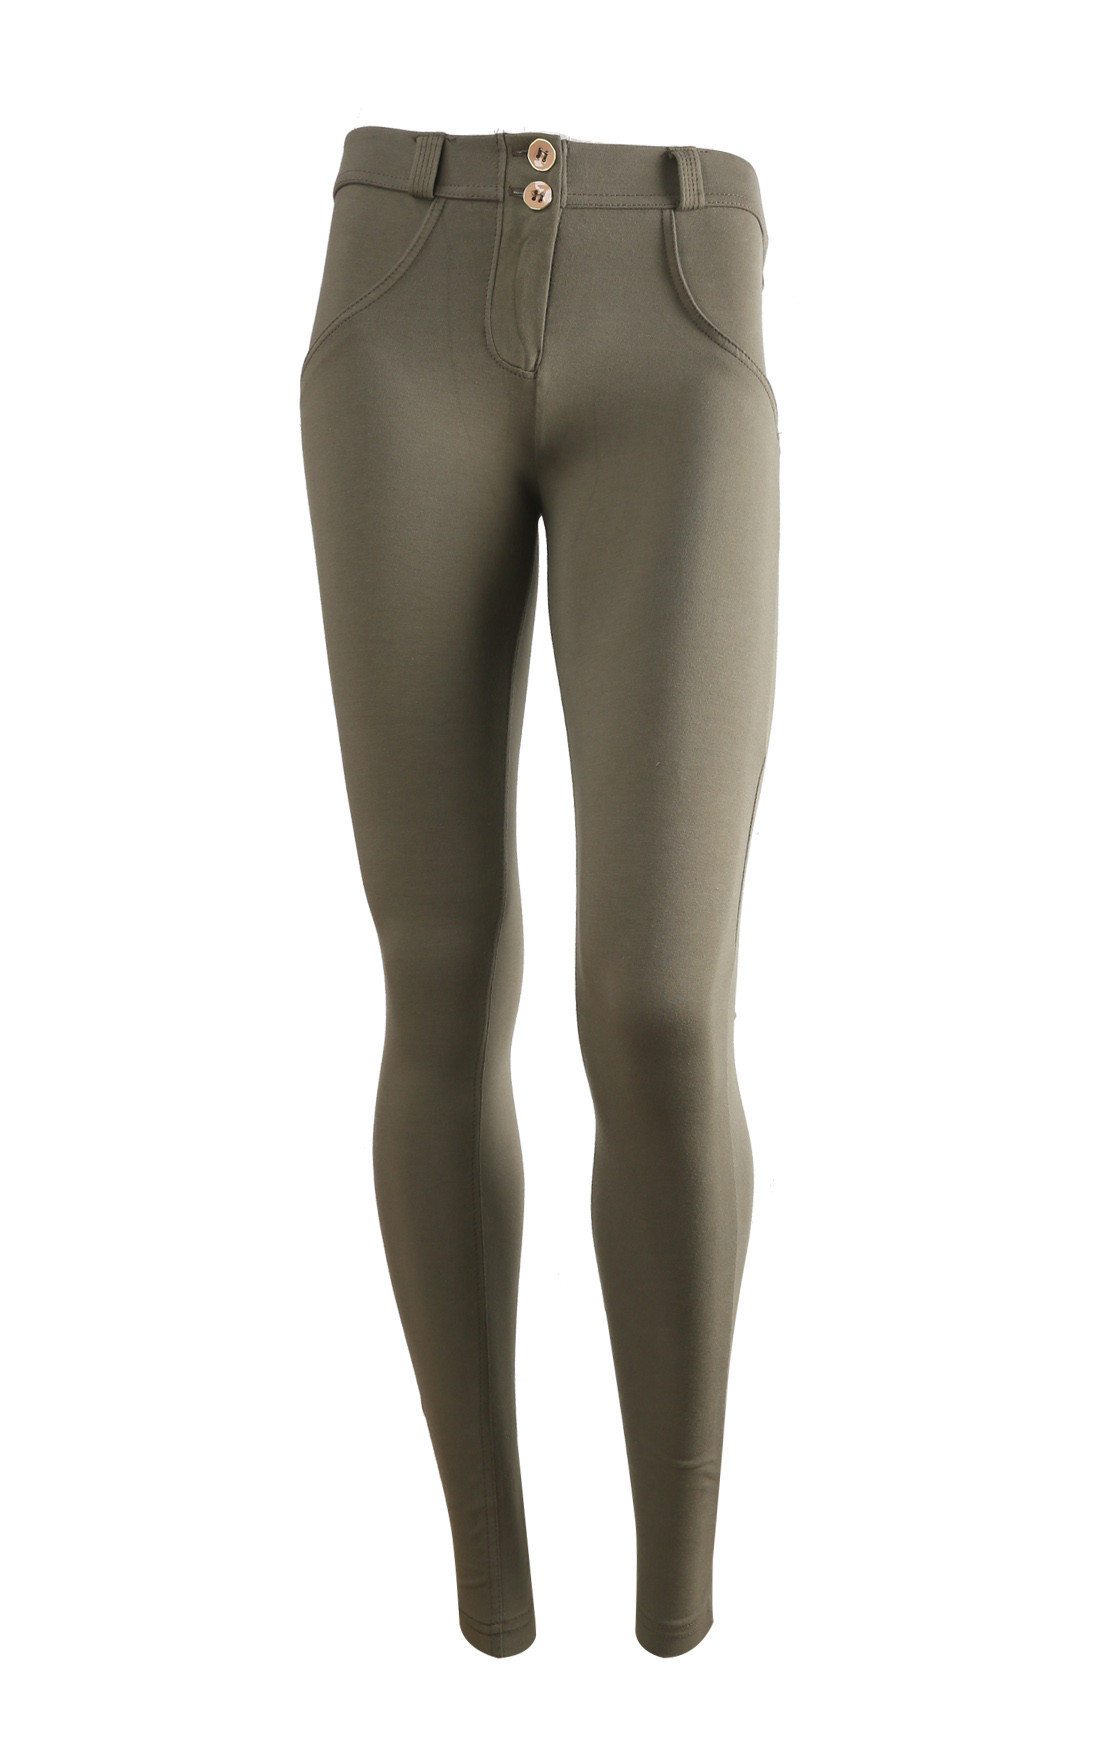 Freddy - Wr.Up® Shaping Effect Mid Waist Skinny Jeggings Khaki (WRUP1RC01E_V33)